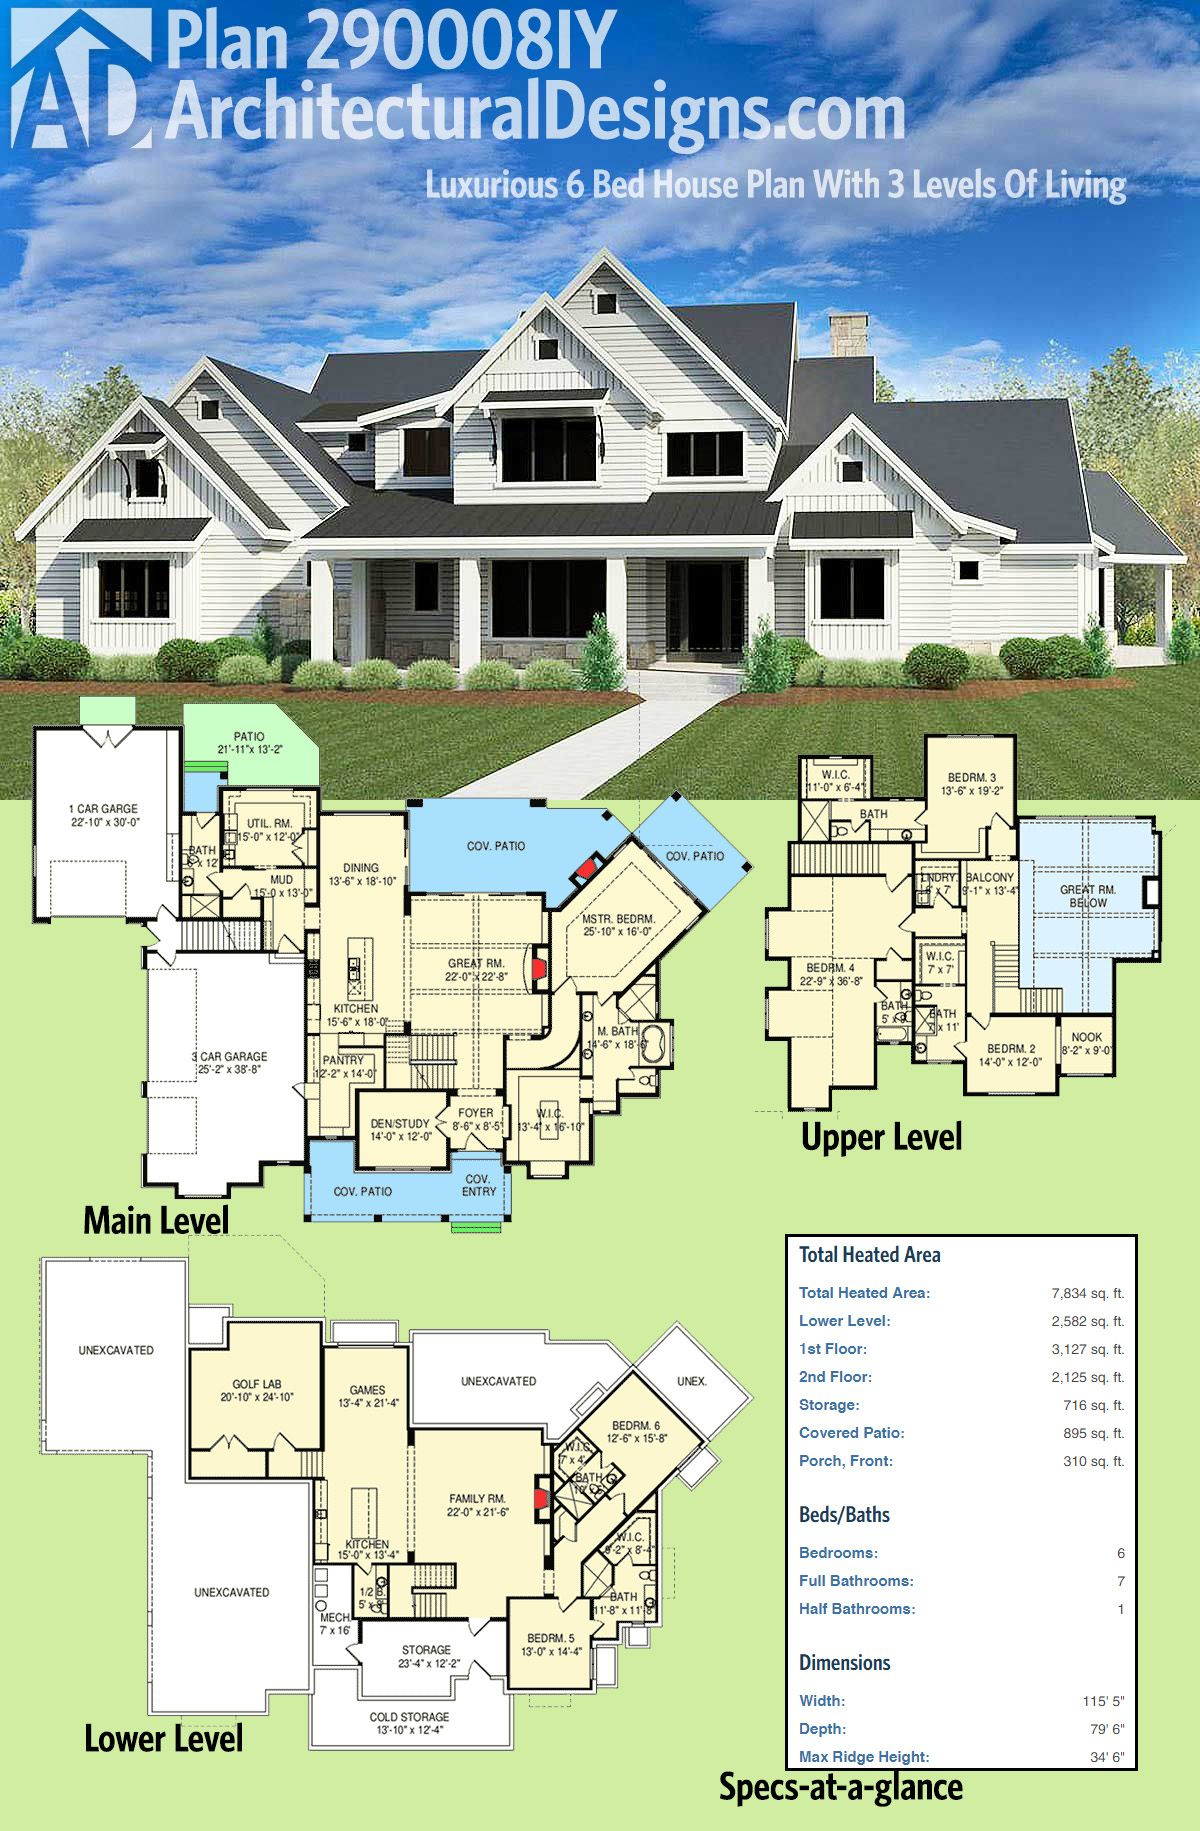 Plan Iy Luxurious 6 Bed House Plan With 3 Levels Of